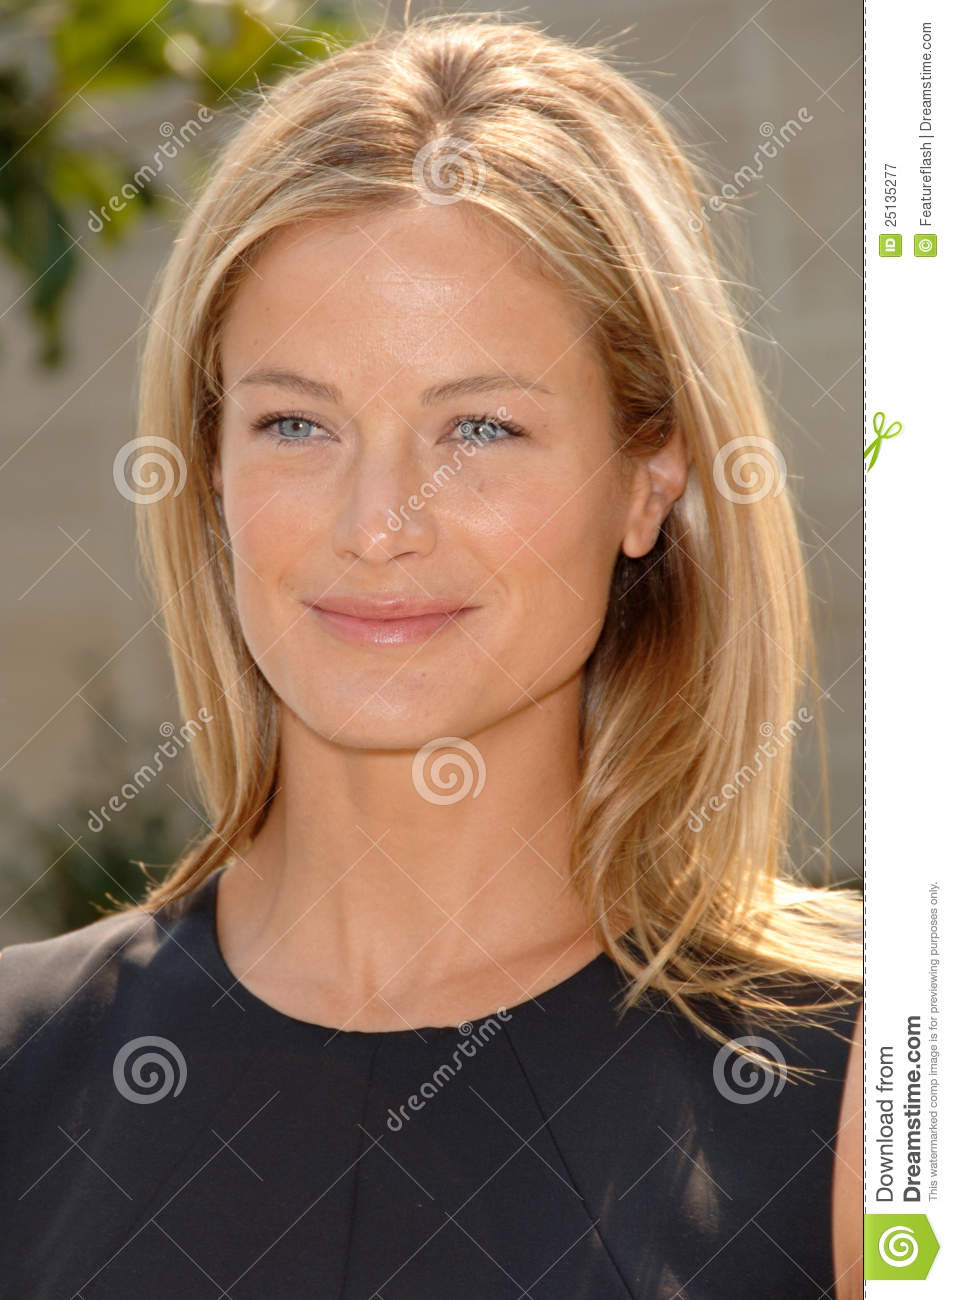 carolyn murphy editorial photography image 25135277 lunch clipart images lunch clip art free images